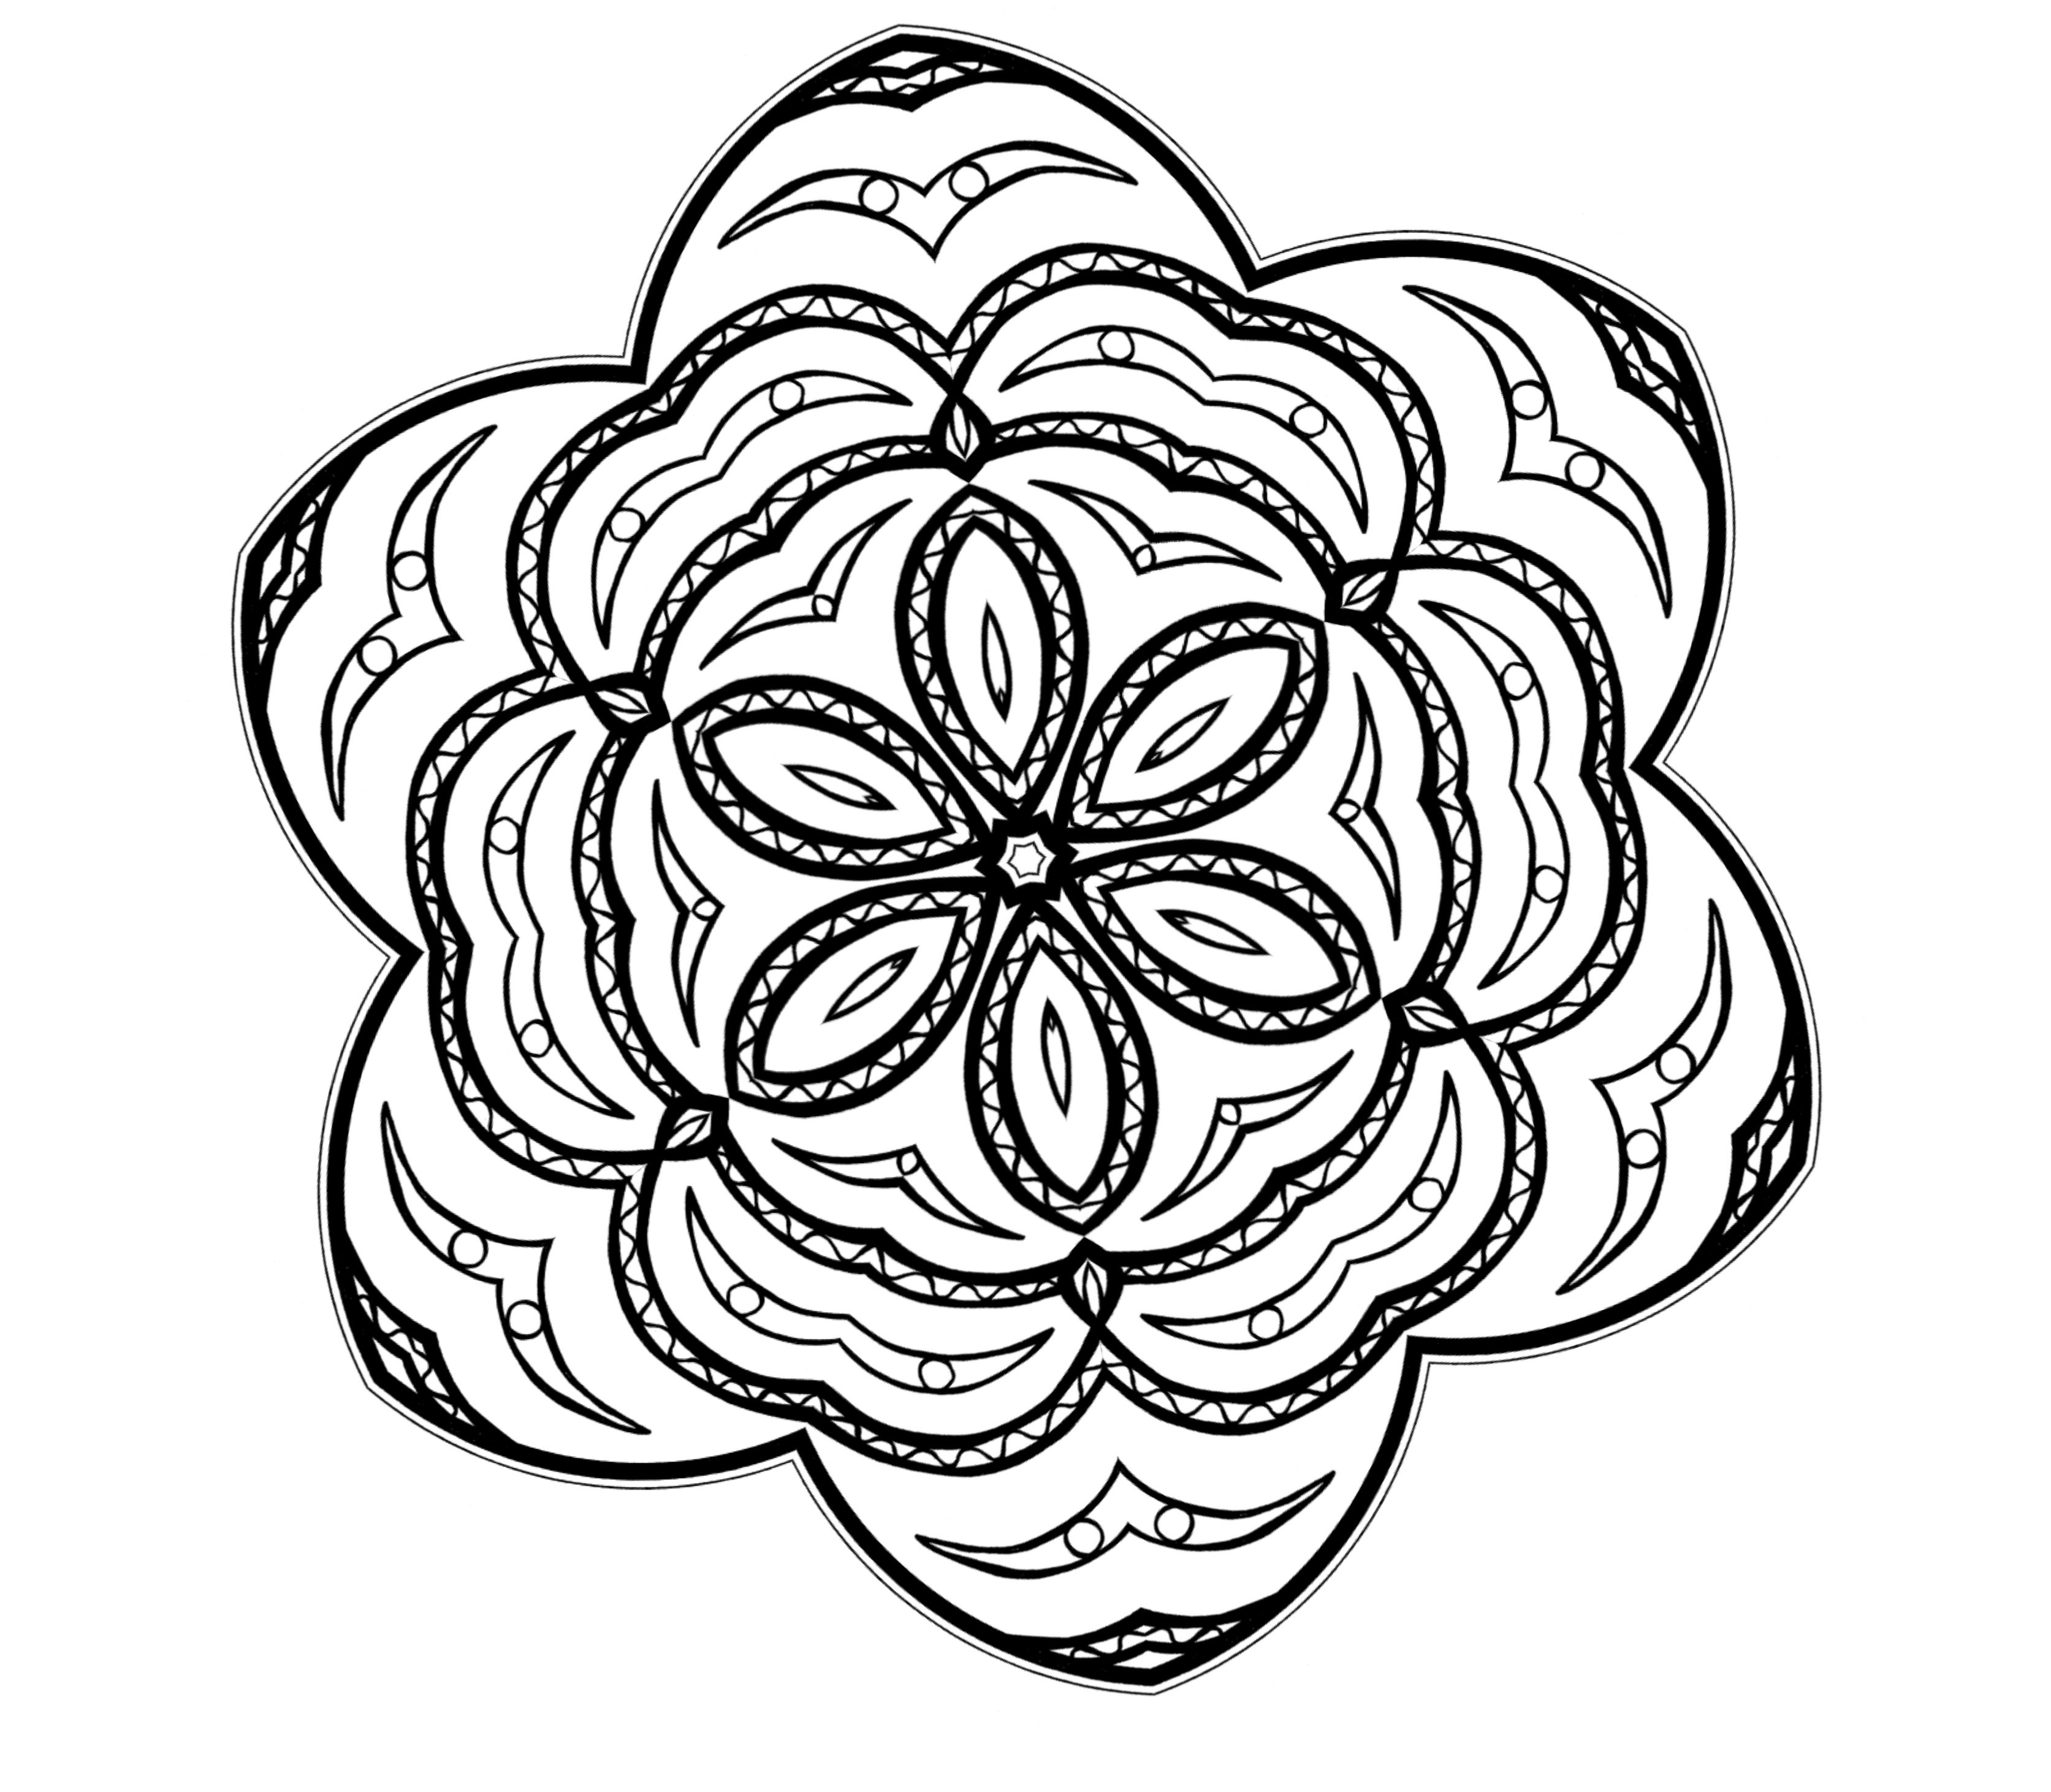 cool abstract coloring pages free printable abstract coloring pages for kids pages cool abstract coloring